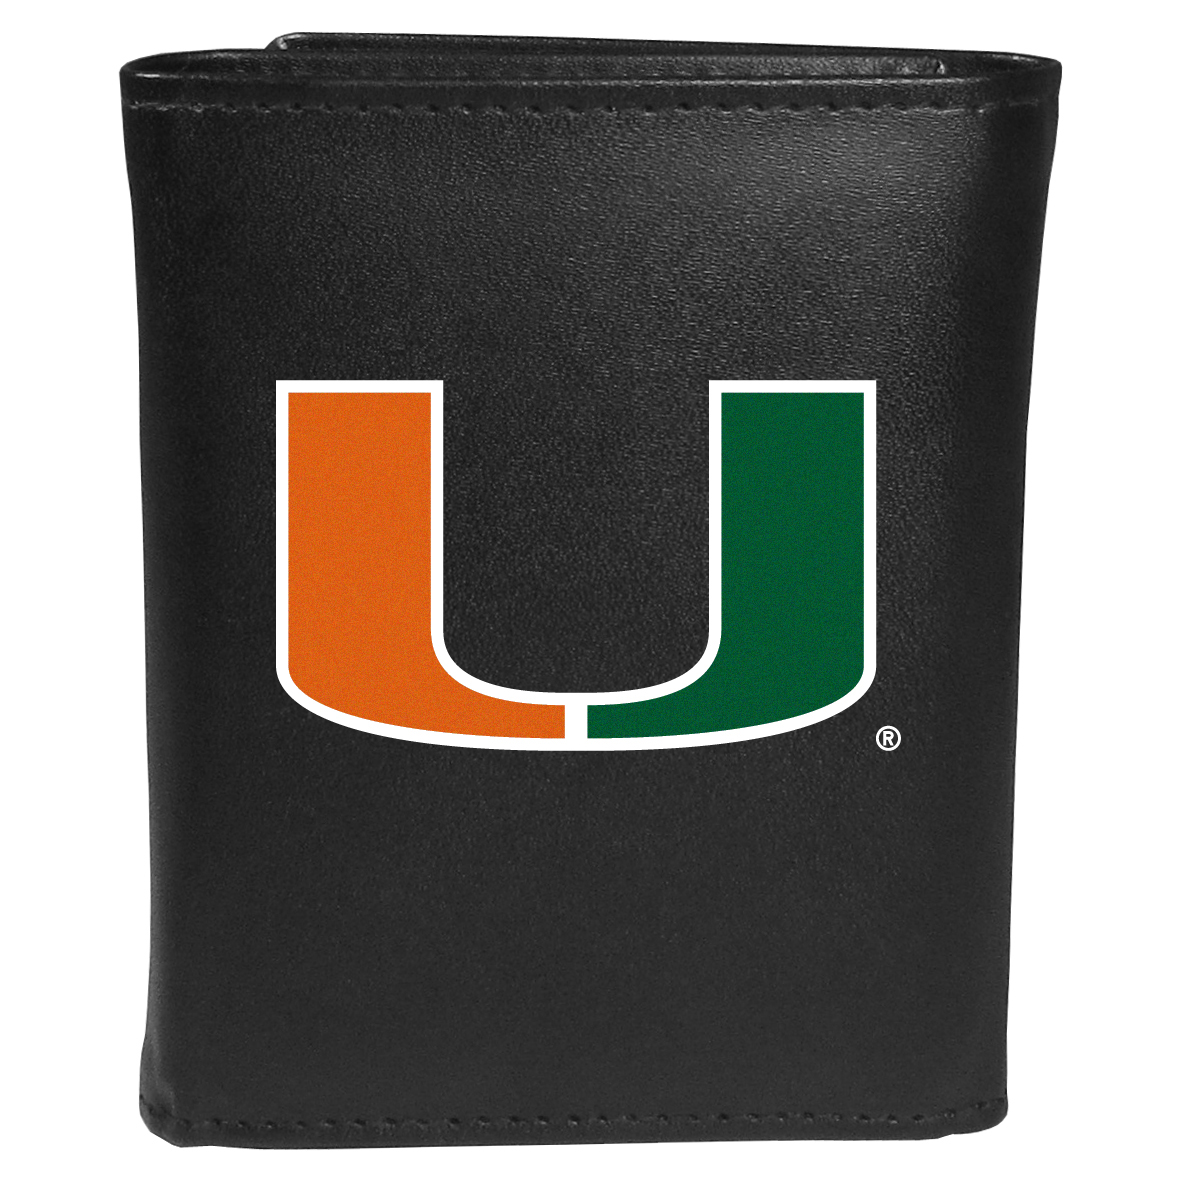 Miami Hurricanes Tri-fold Wallet Large Logo - Sports fans do not have to sacrifice style with this classic tri-fold wallet that sports theMiami Hurricanes?extra large logo. This men's fashion accessory has a leather grain look and expert craftmanship for a quality wallet at a great price. The wallet features inner credit card slots, windowed ID slot and a large billfold pocket. The front of the wallet features an extra large printed team logo.